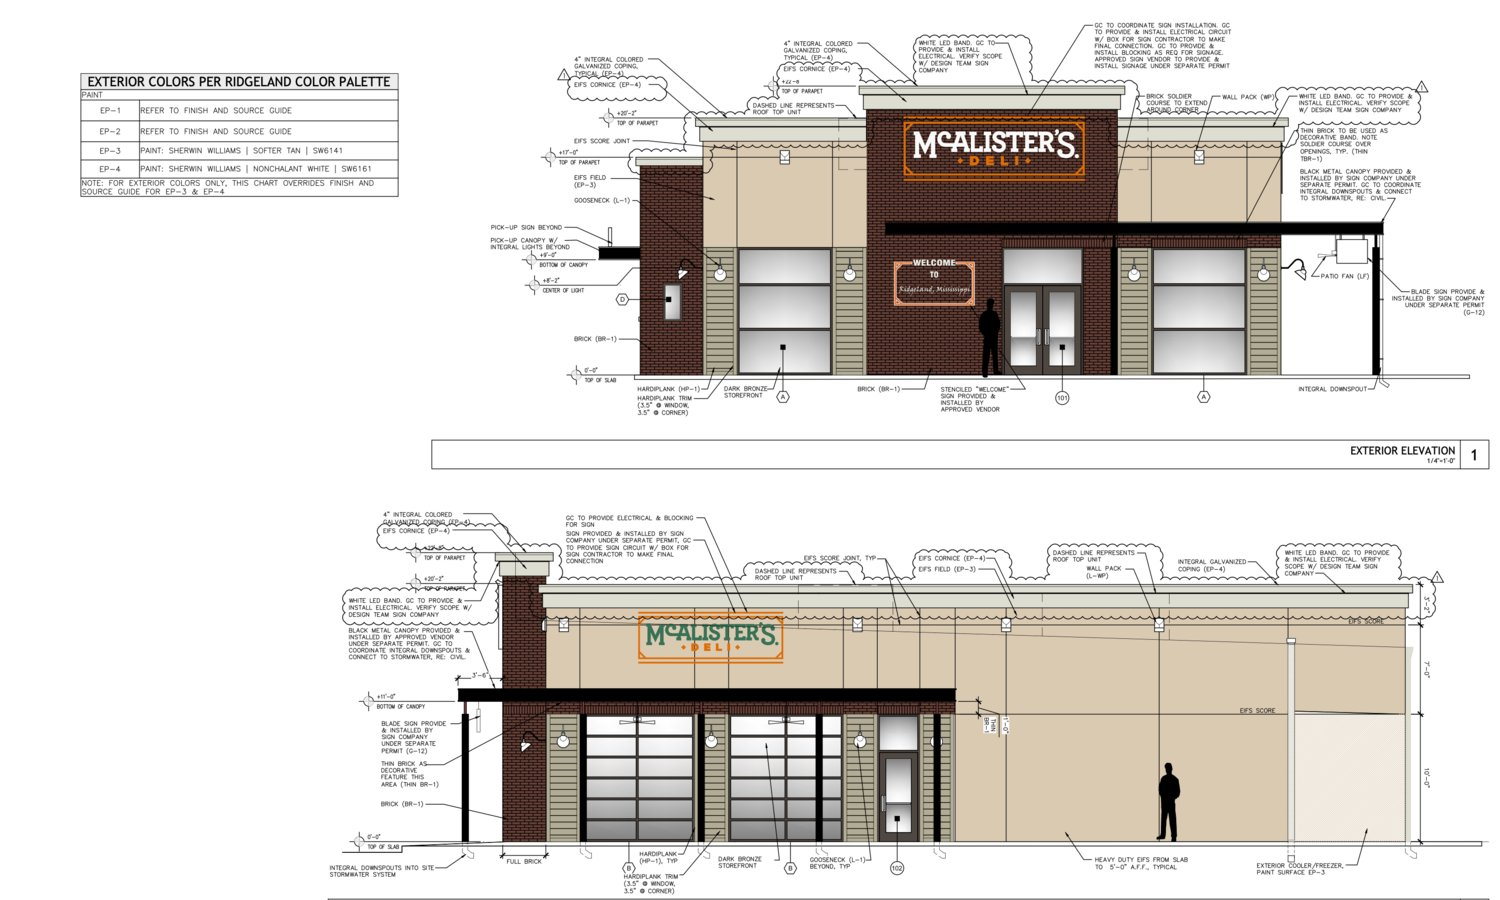 Ridgeland aldermen approved architectural plans for McAlister's Deli to locate on County Line Road.